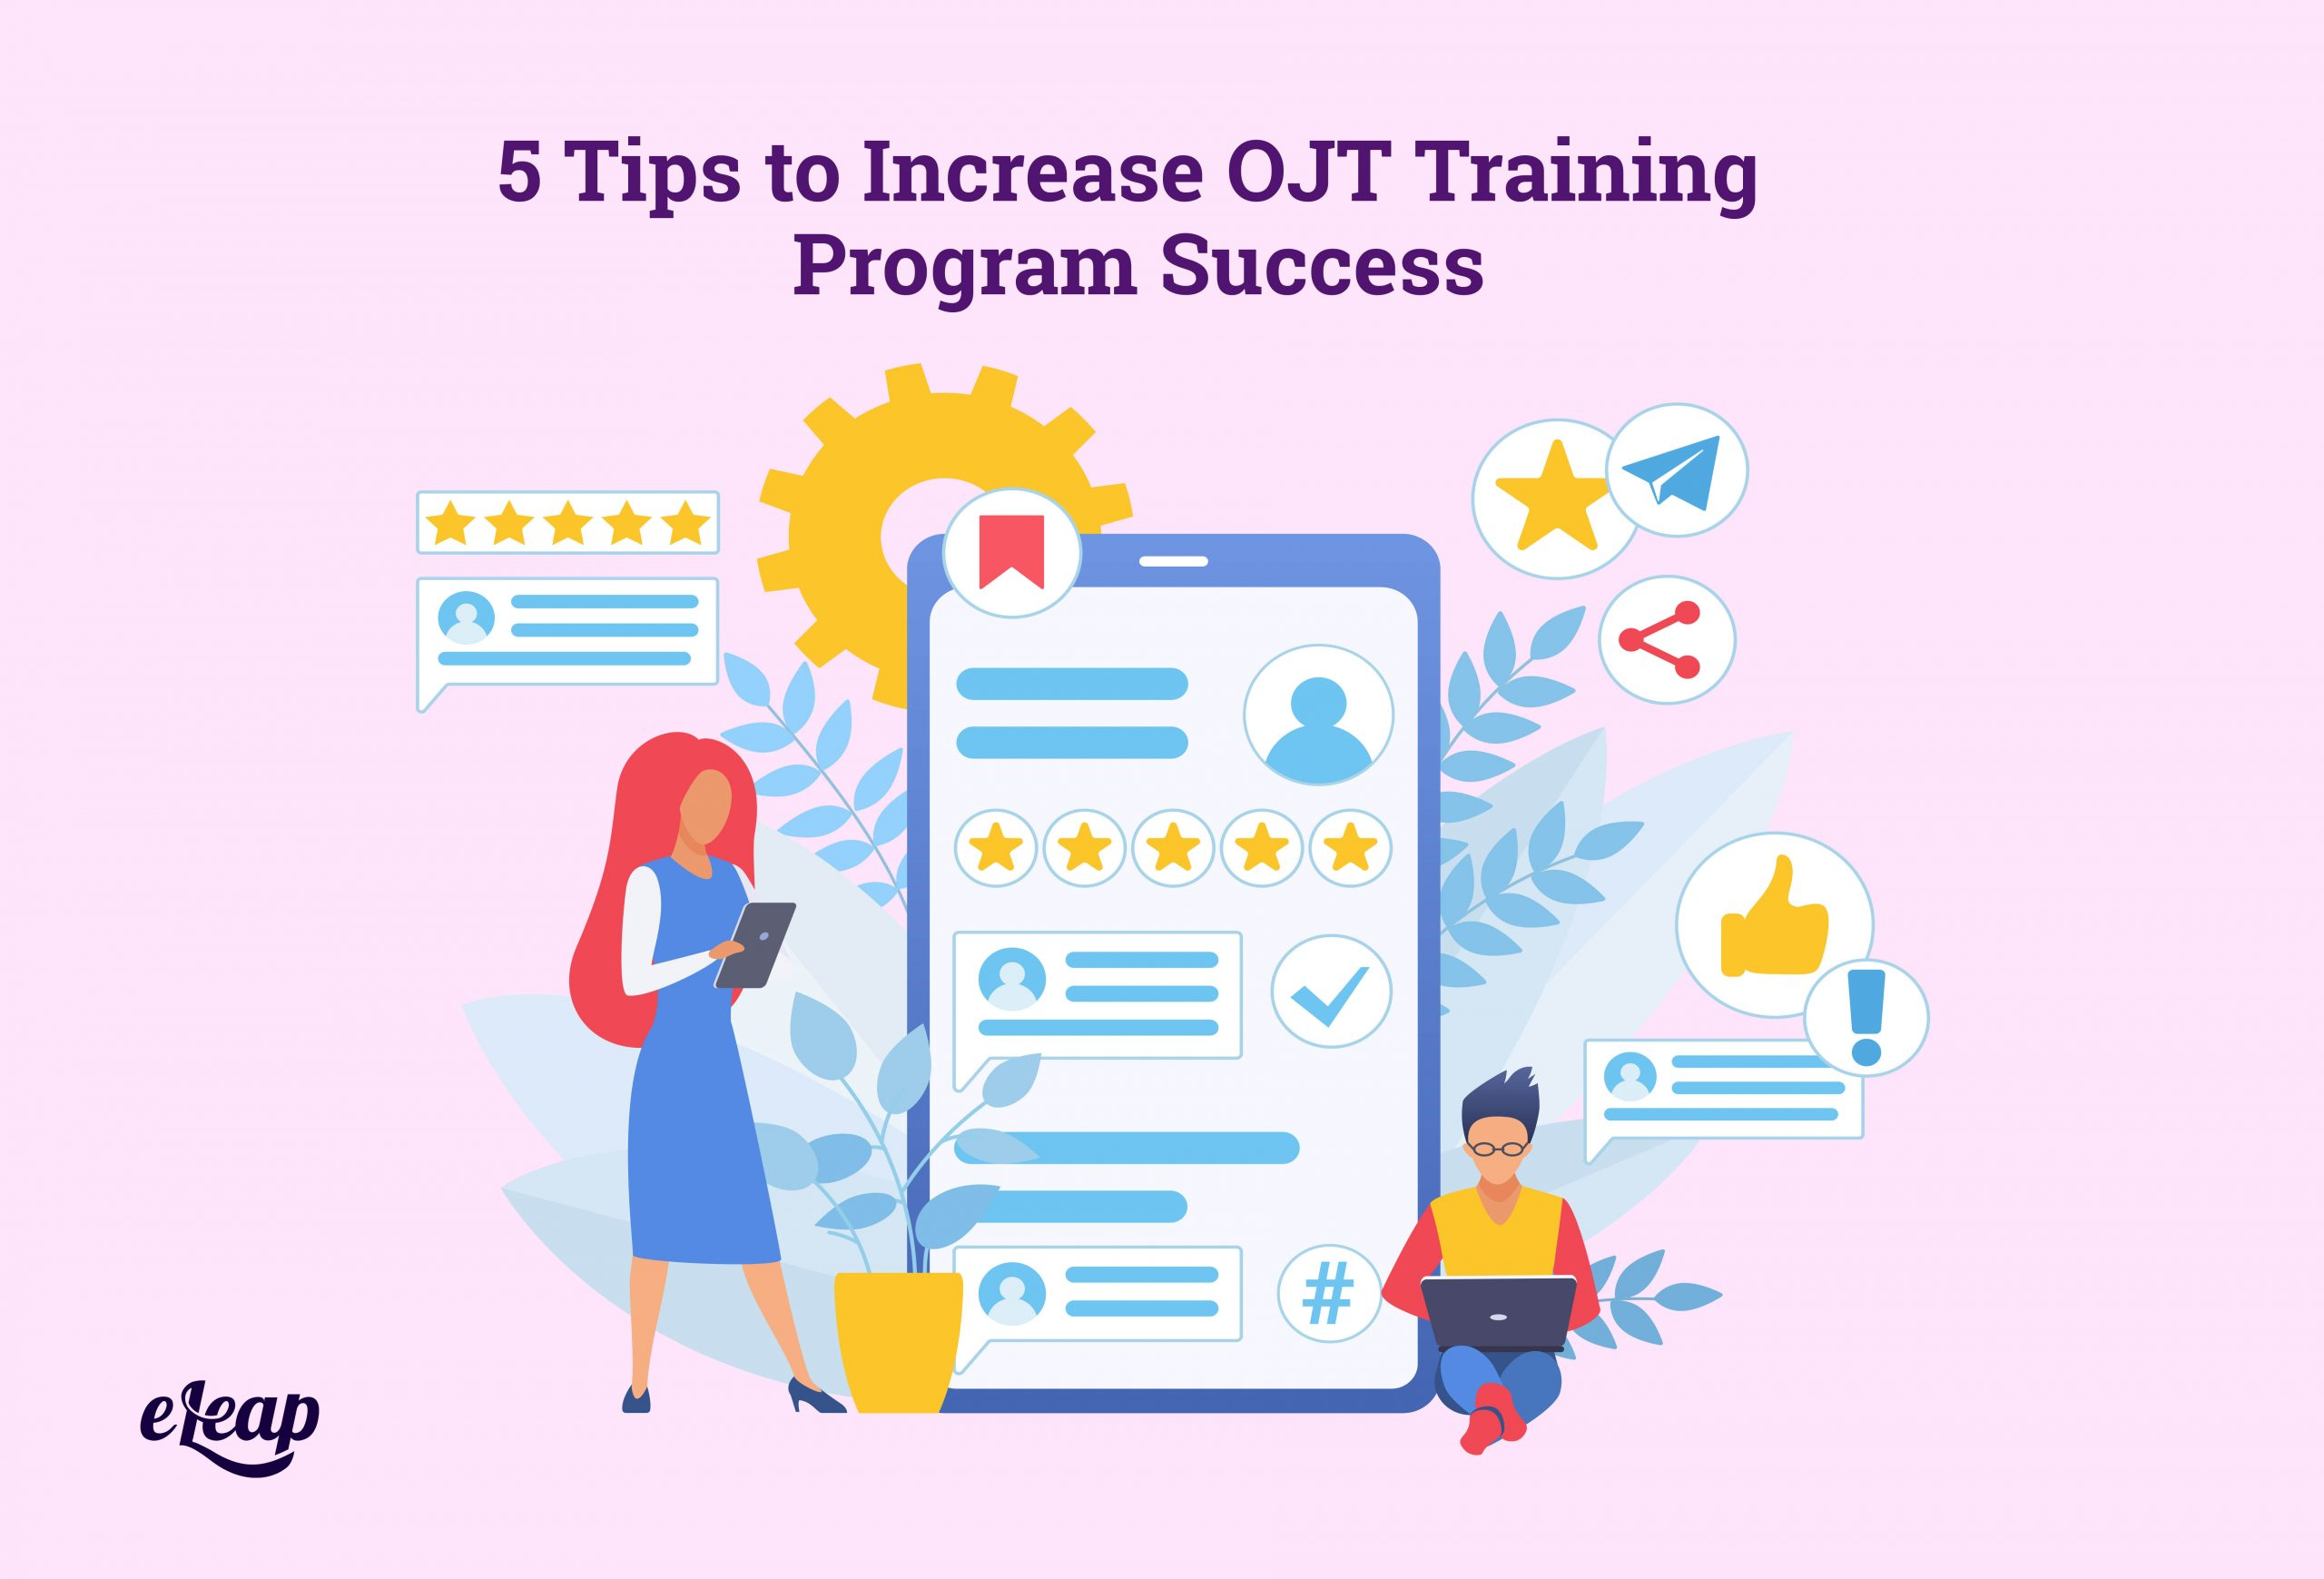 5 Tips to Increase OJT Training Program Success